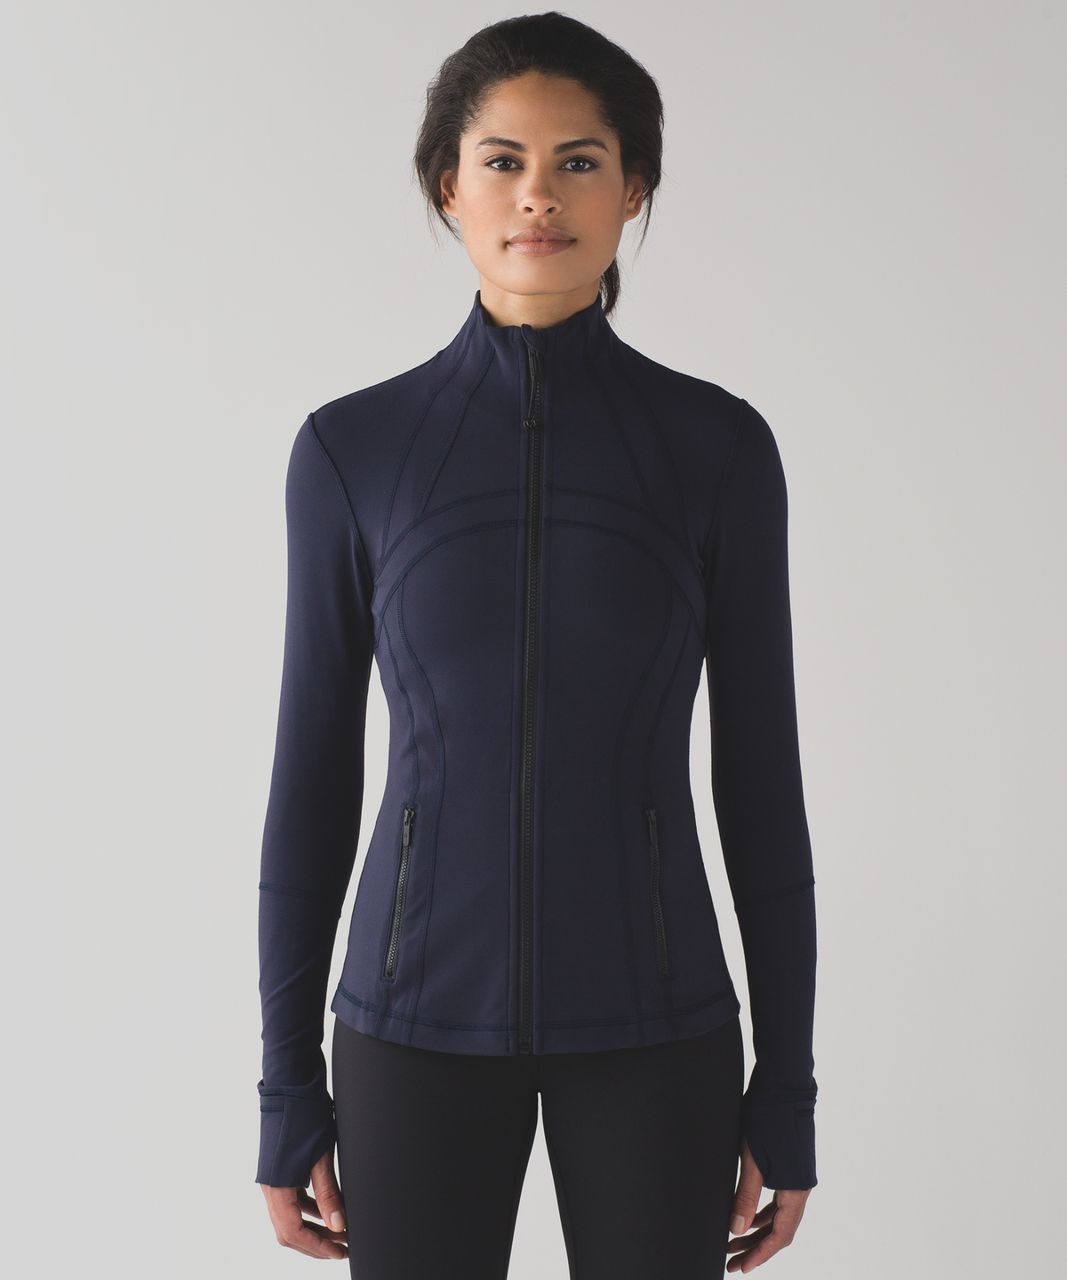 Lululemon Define Jacket - Midnight Navy